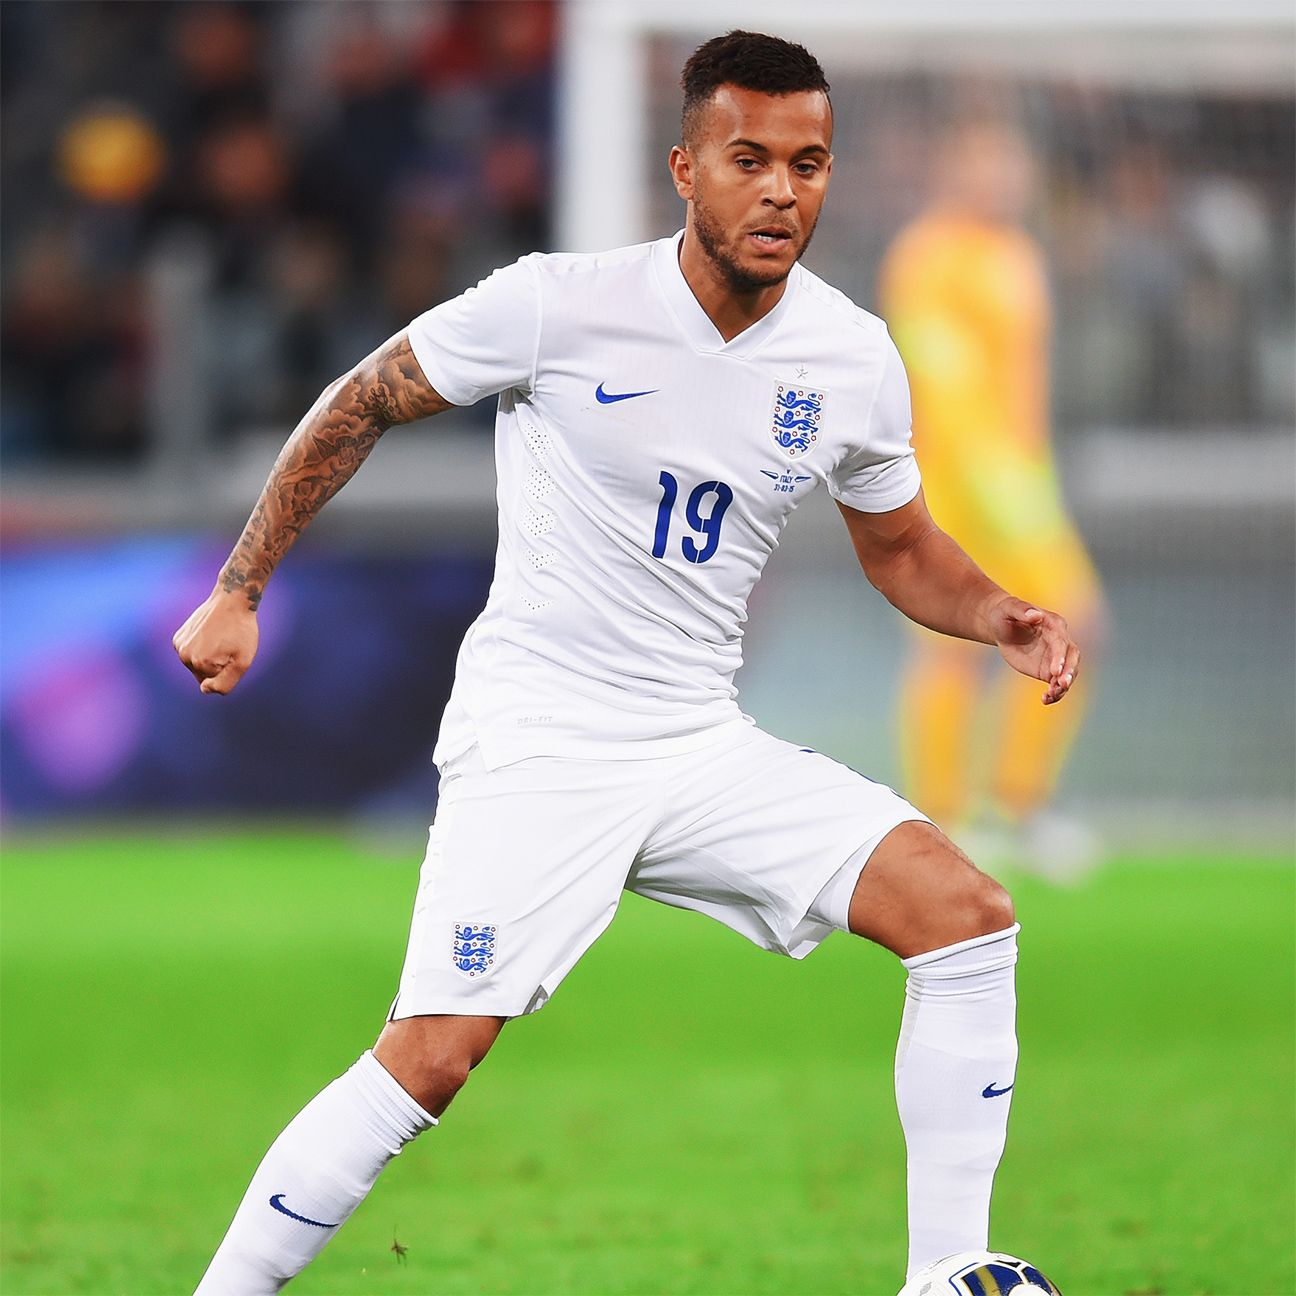 Ryan Bertrand has 16 England caps since making his debut in 2012.